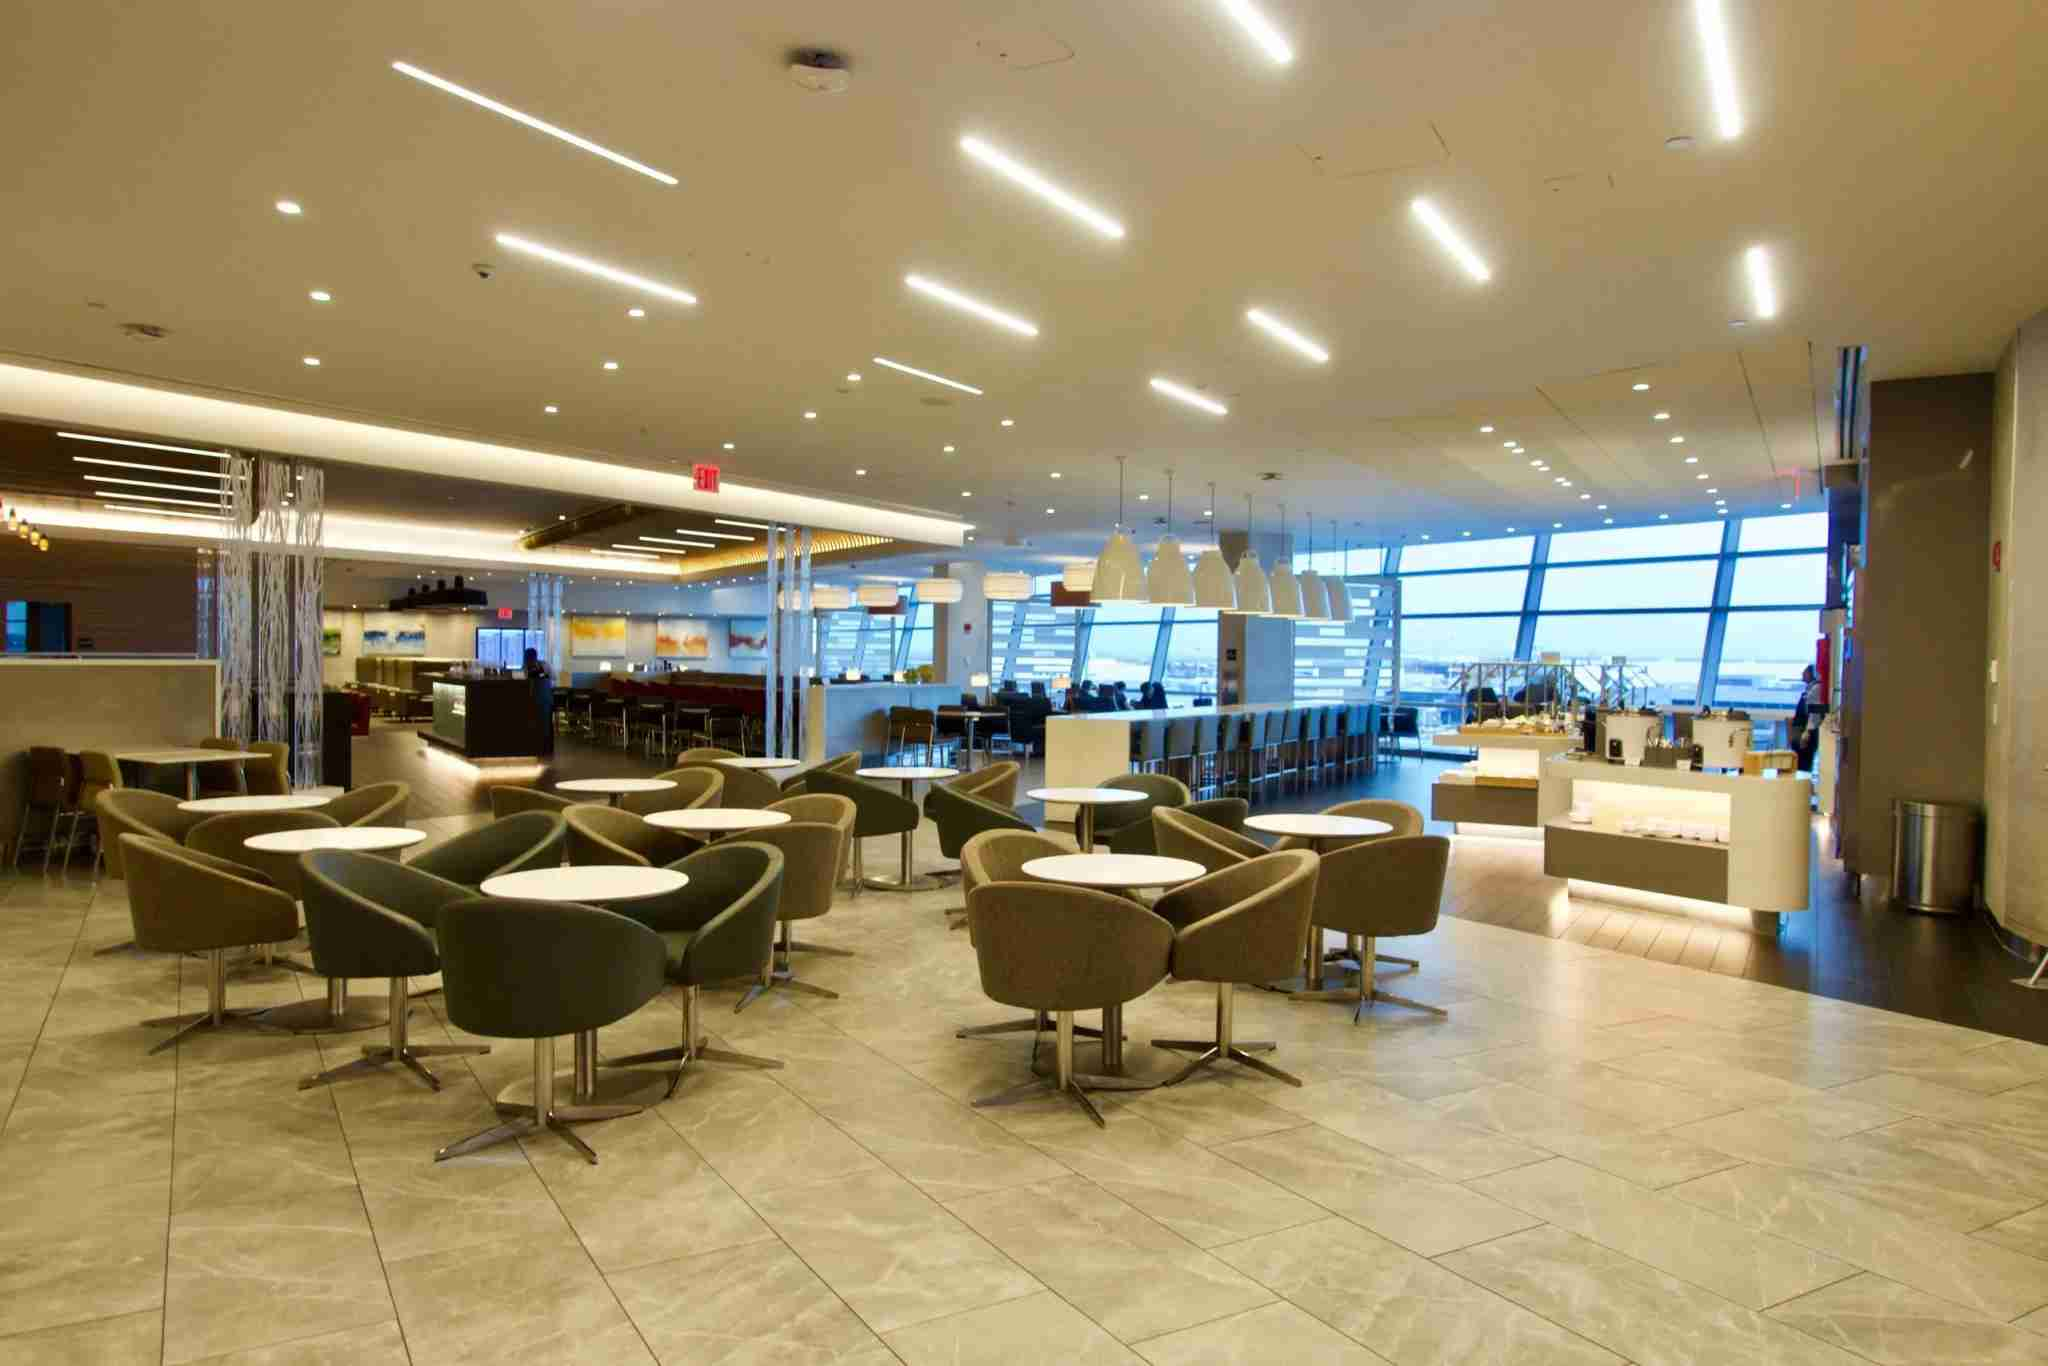 The JFK American Airlines Flagship lounge. Photo by Christian Kramer / The Points Guy.